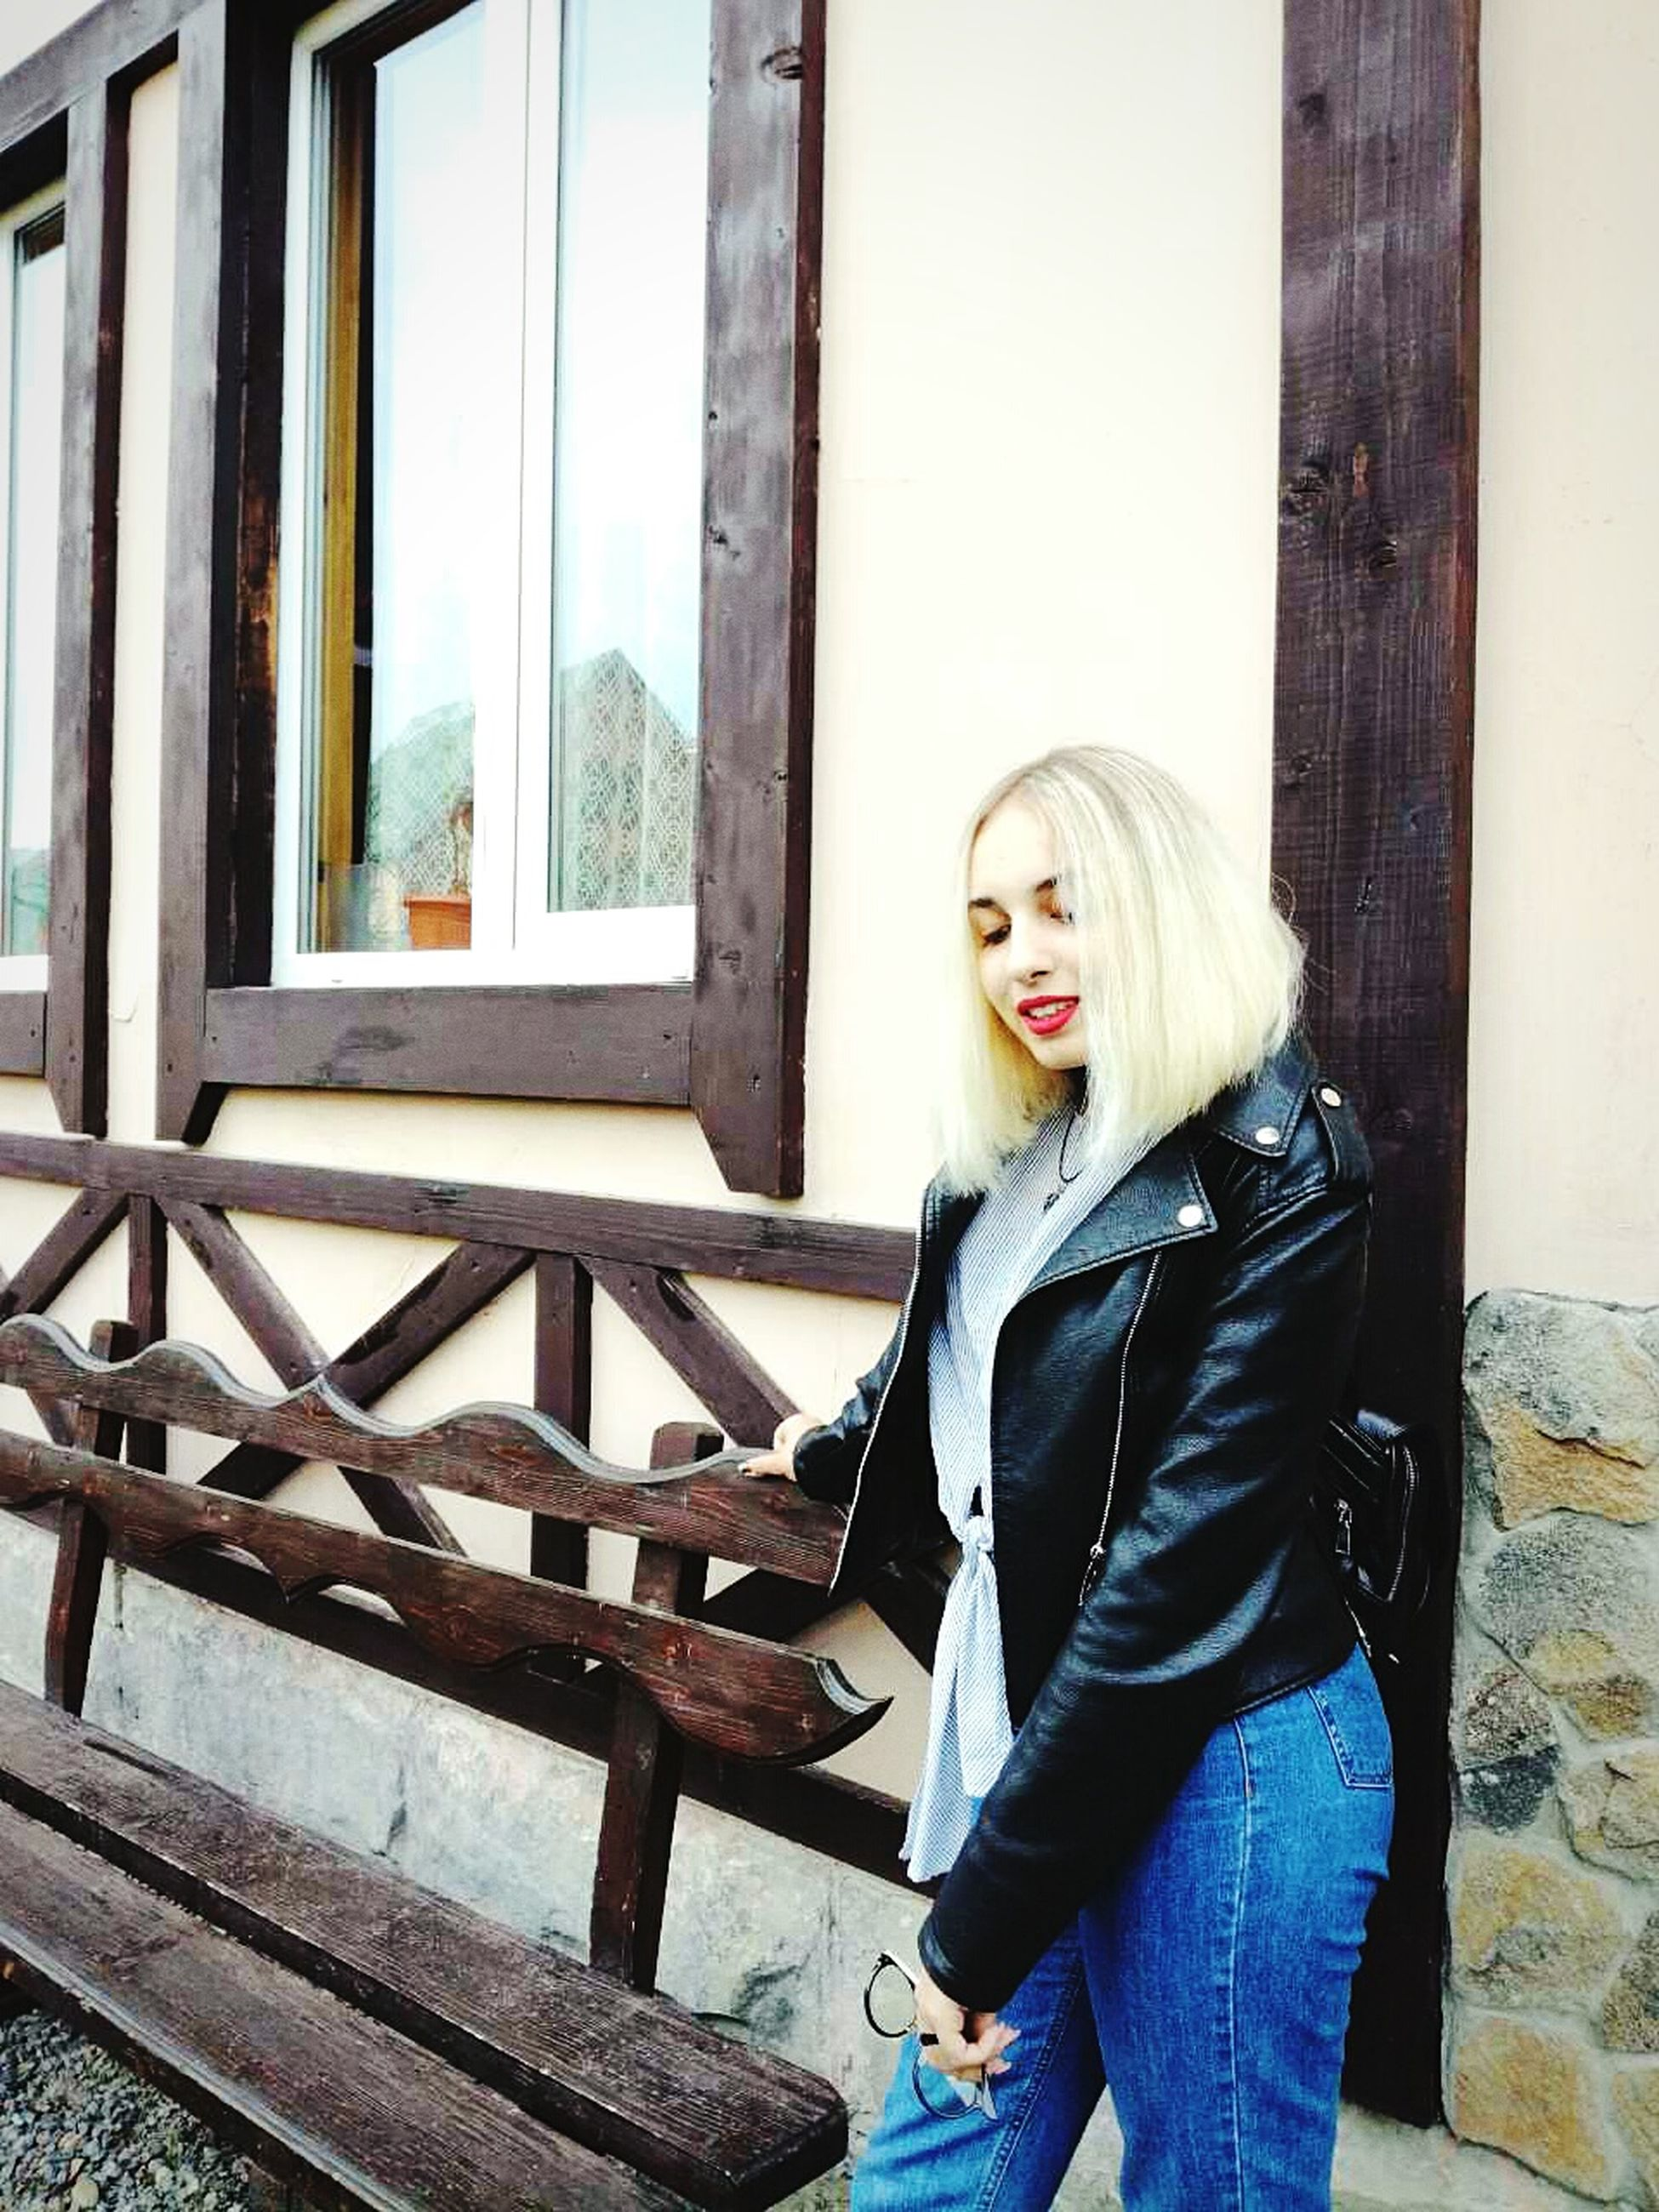 one person, young adult, young women, real people, beautiful woman, window, casual clothing, jacket, leisure activity, lifestyles, day, sitting, waiting, blond hair, architecture, indoors, portrait, people